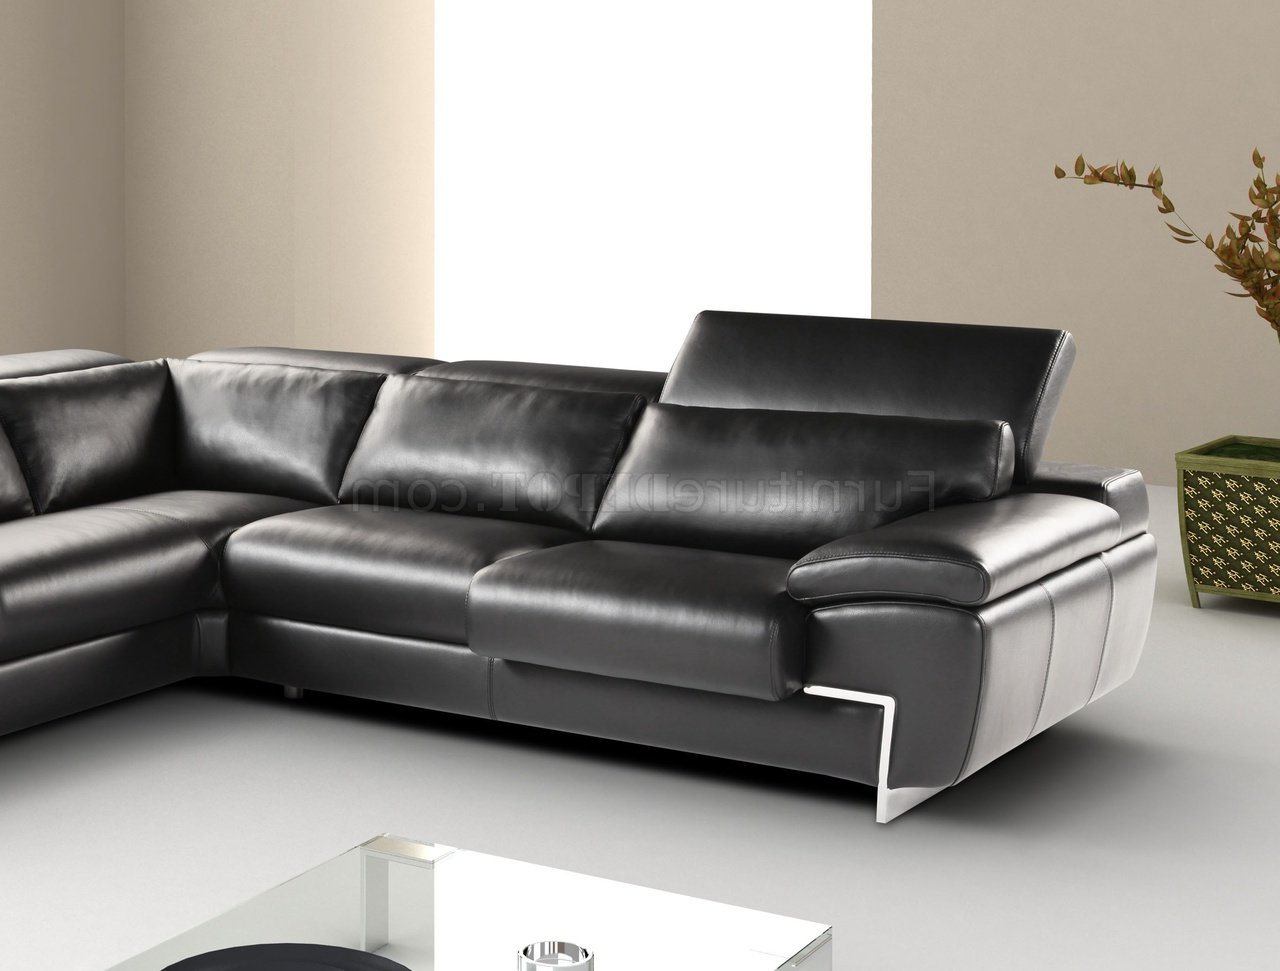 Preferred Wynne Contemporary Sectional Sofas Black Regarding Black Full Leather Modern Sectional Sofa W/adjustable Headrest (View 12 of 20)